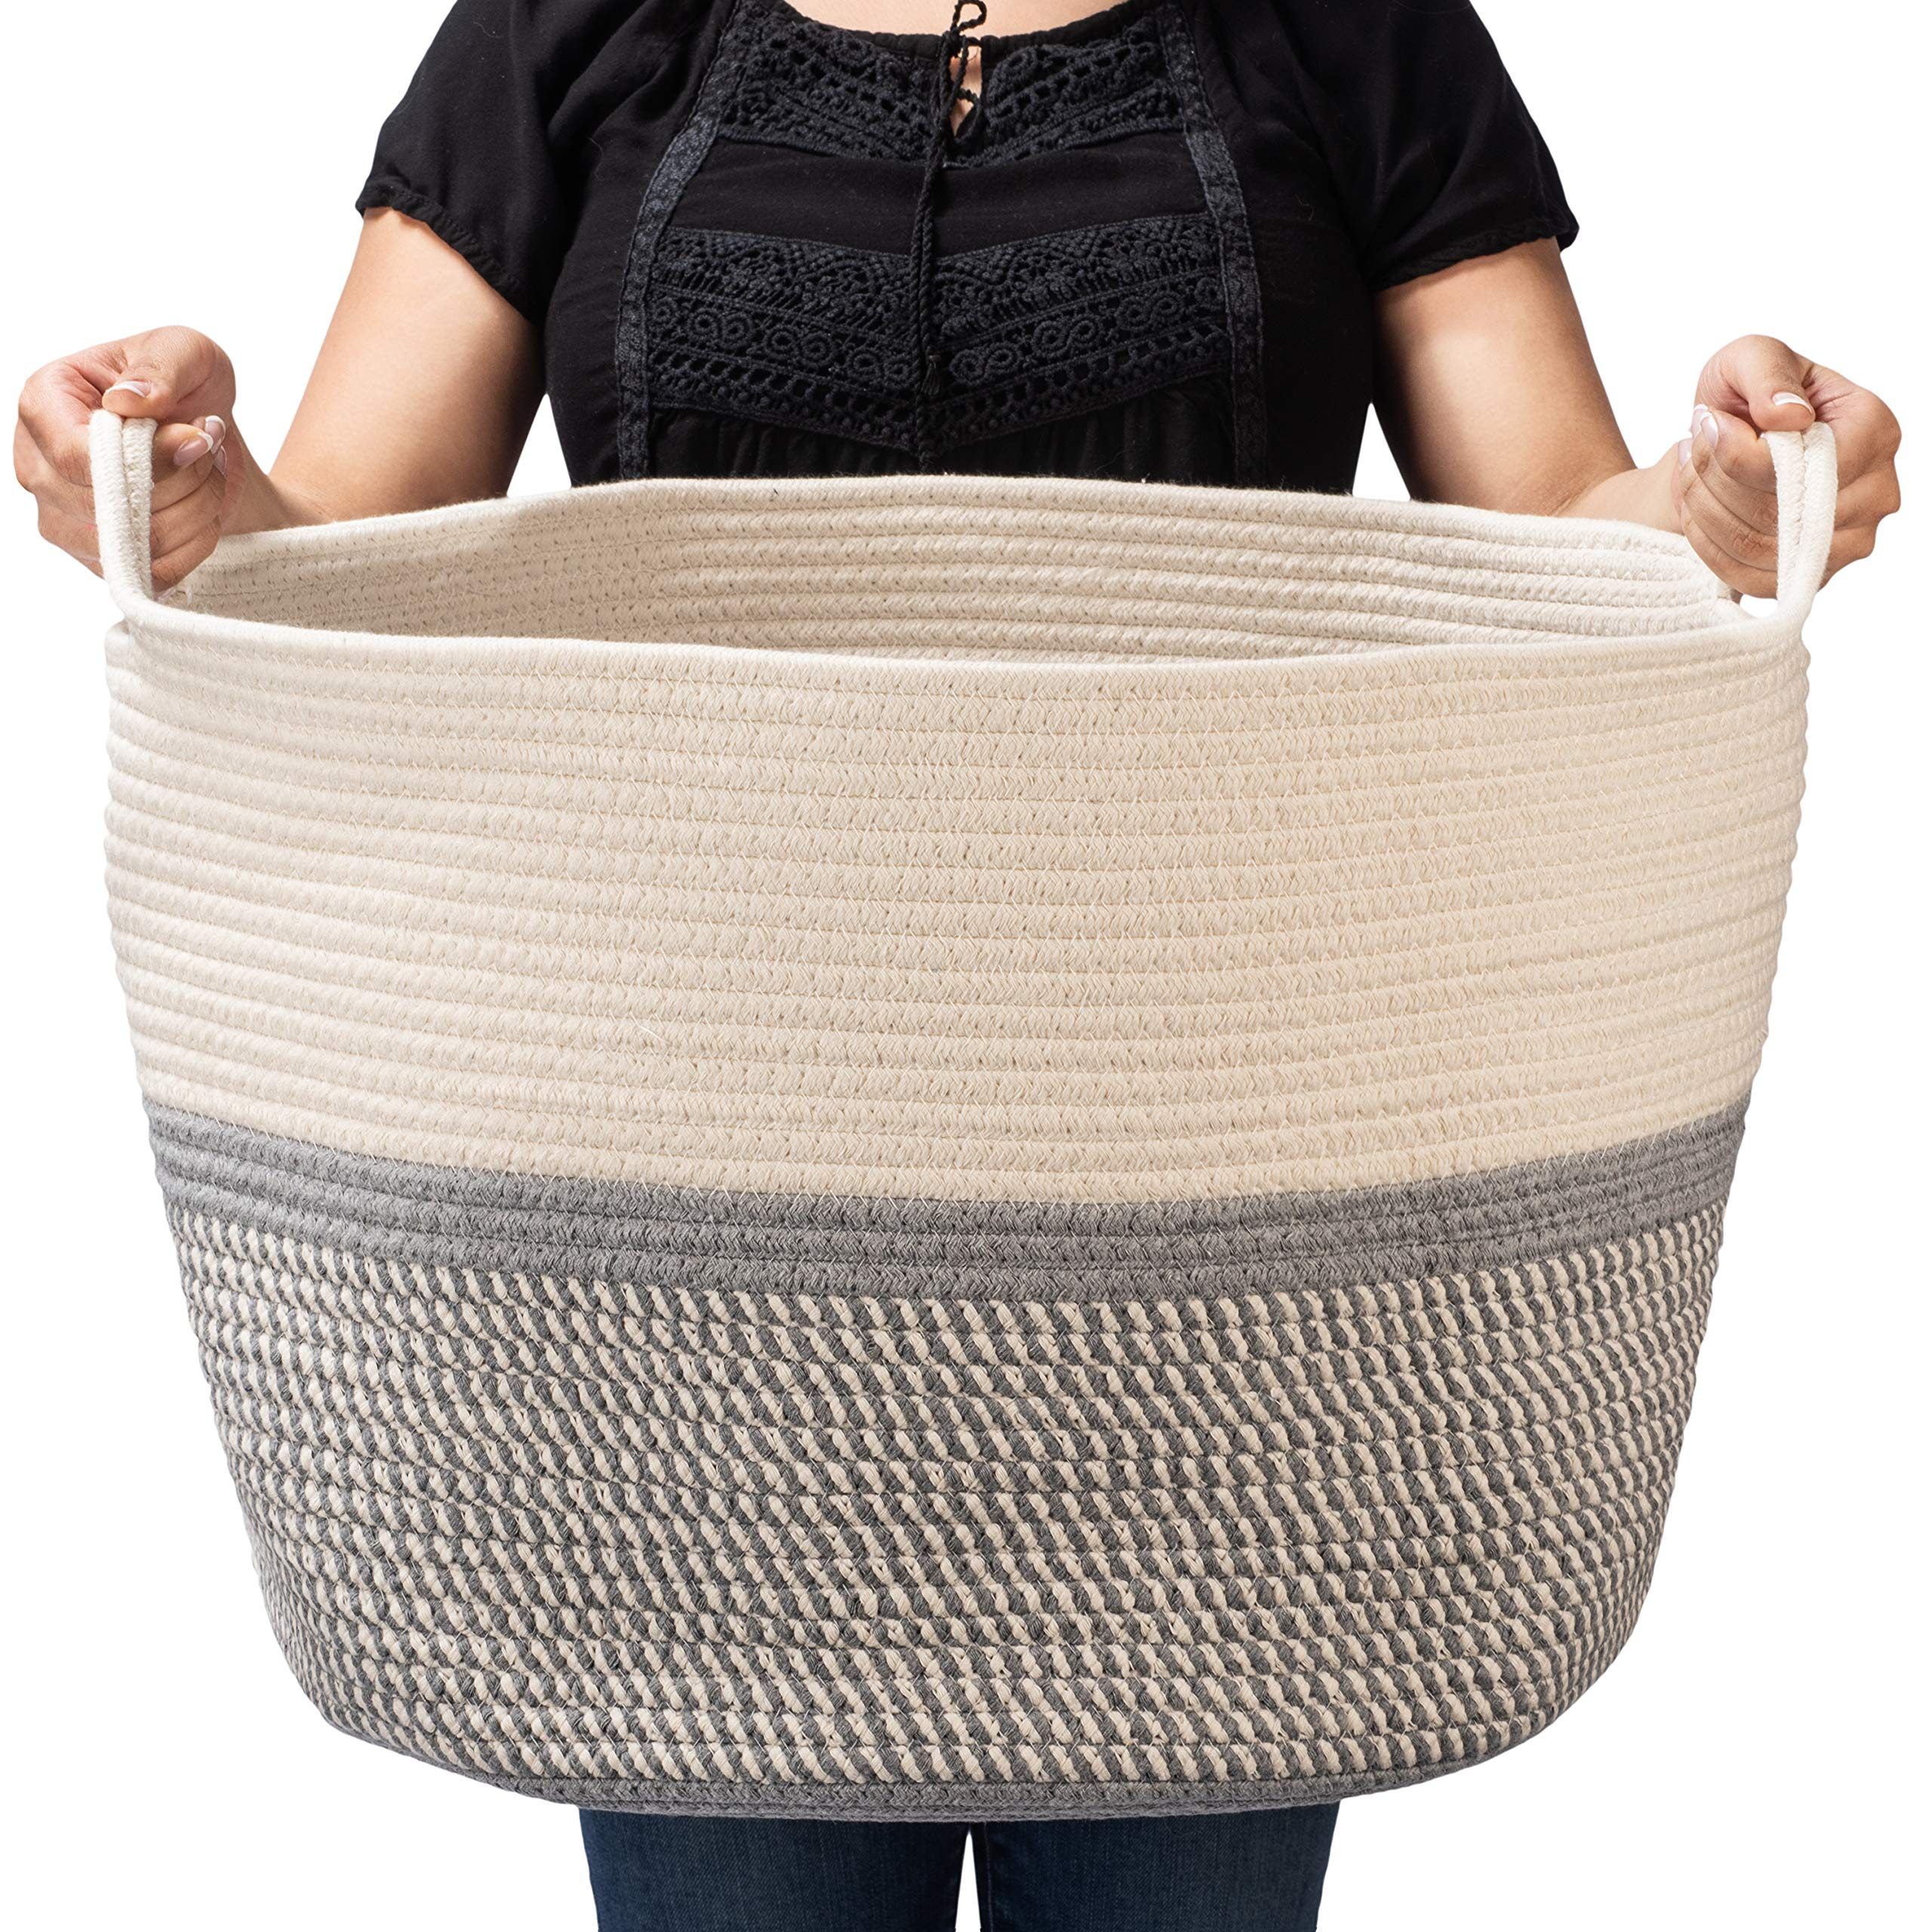 BASKETCASE XXXLarge Cotton Rope Basket Large (21.7'' x 21.7'' X 13.8'') for Storage of Extra Large Toy Toys Blankets Laundry Baskets XXXL Hamper Decor for Bedroom Nursery Play Room''The Kate'' by BASKETCASE